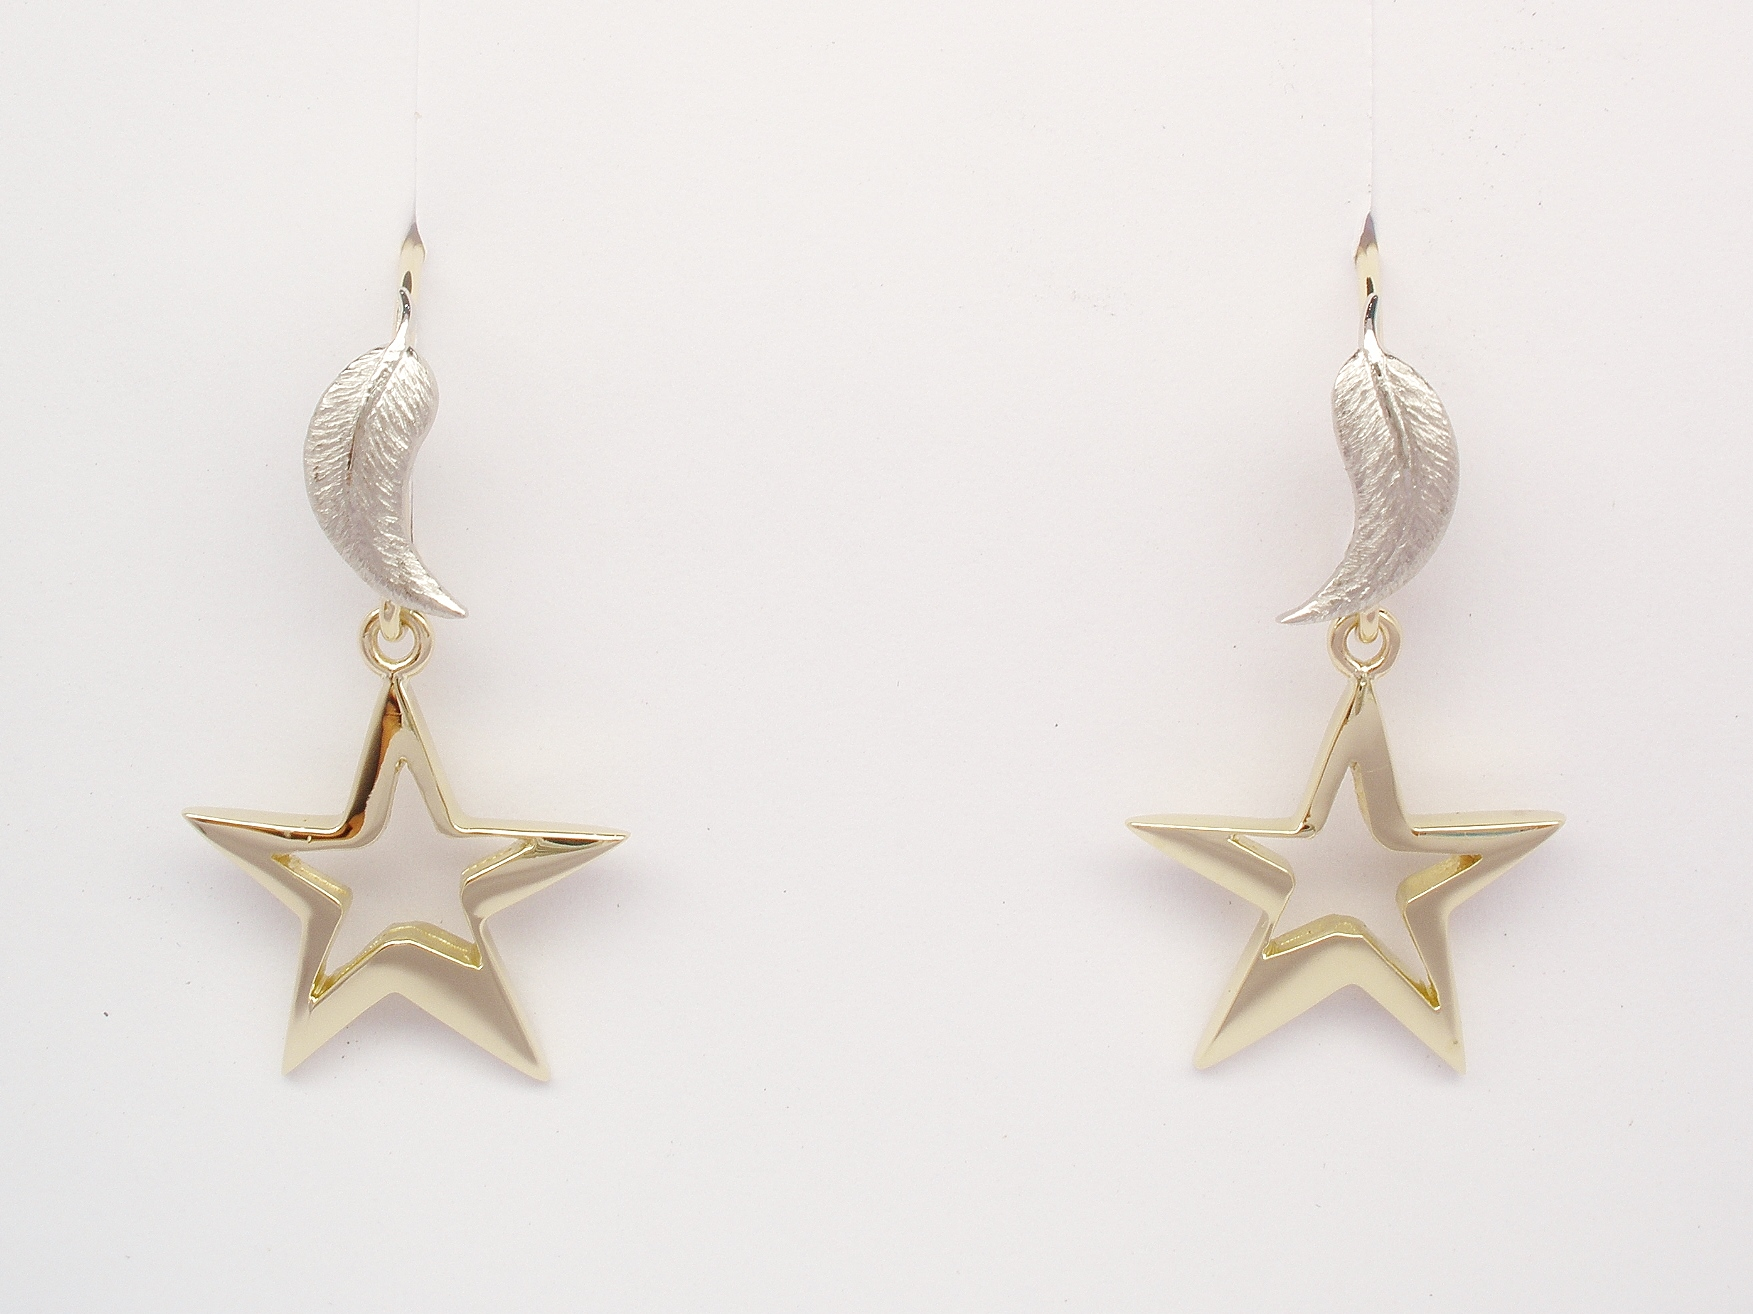 18ct. yellow gold and palladium feather and star earrings.